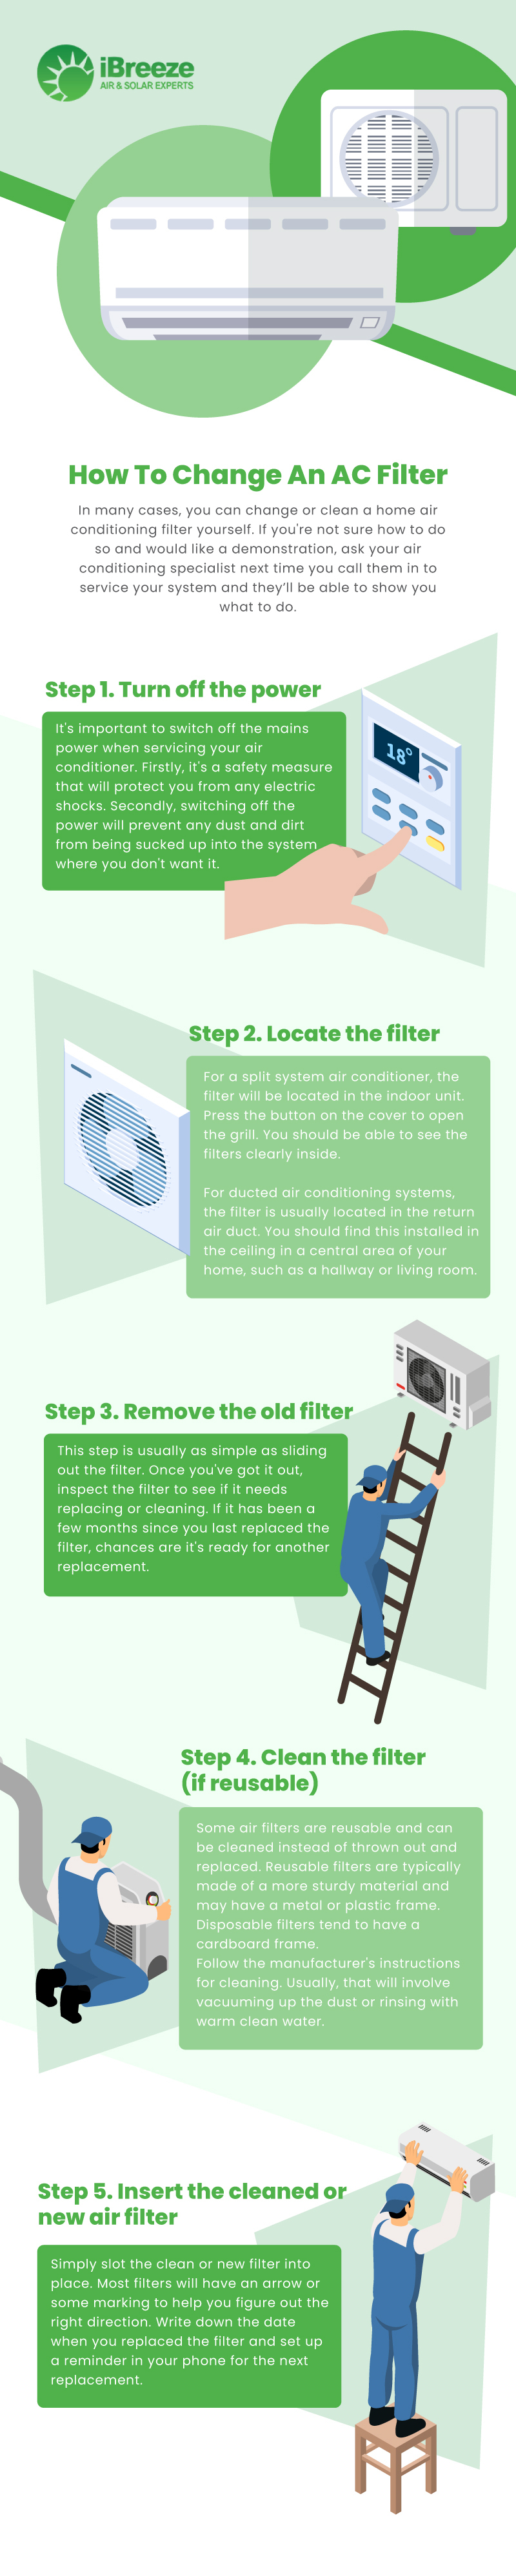 How to Change Your AC Filter at Home-infographic